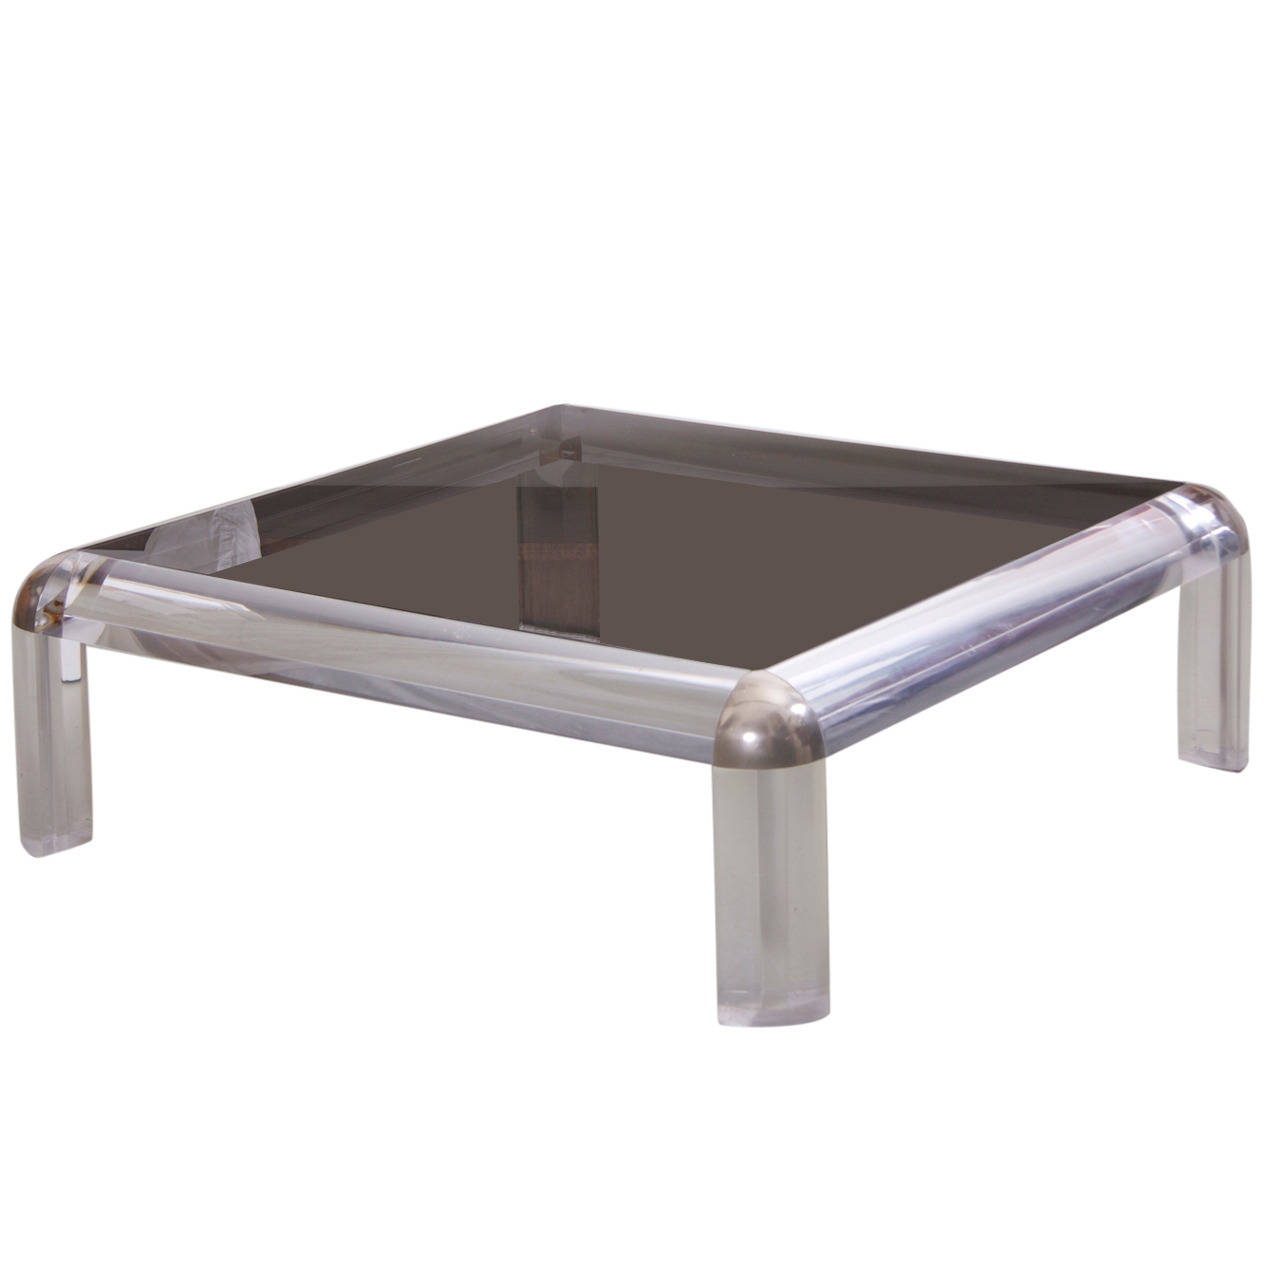 Lucite Chrome and Smoked Glass Square Coffee Table, Karl Springer Style